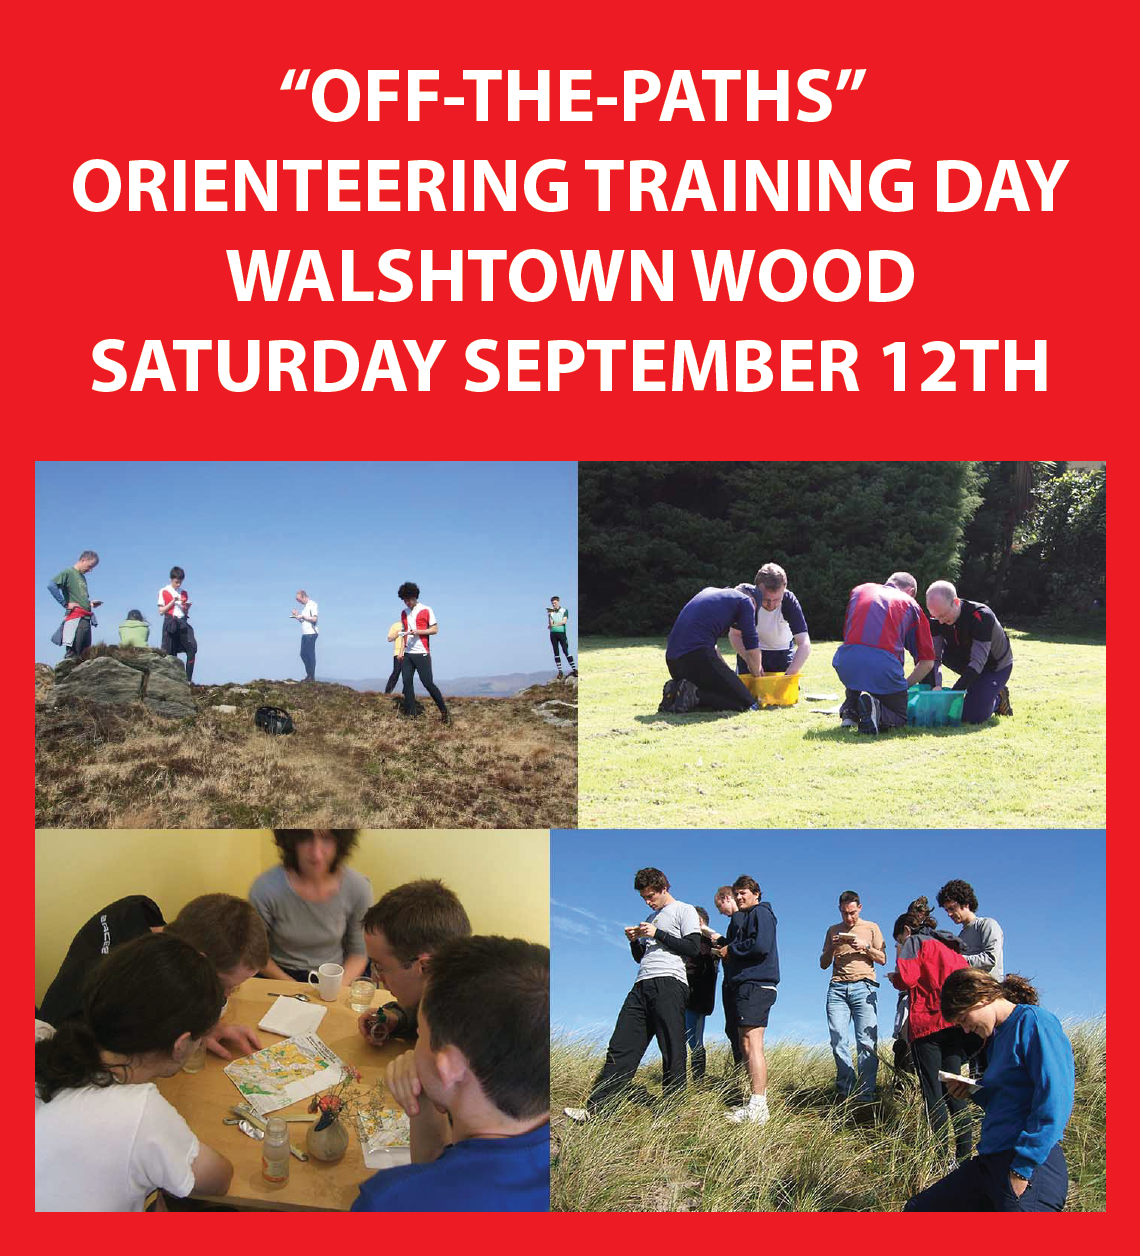 Off The Paths Training Day - Walshtown Wood SATURDAY SEPTEMBER 12TH